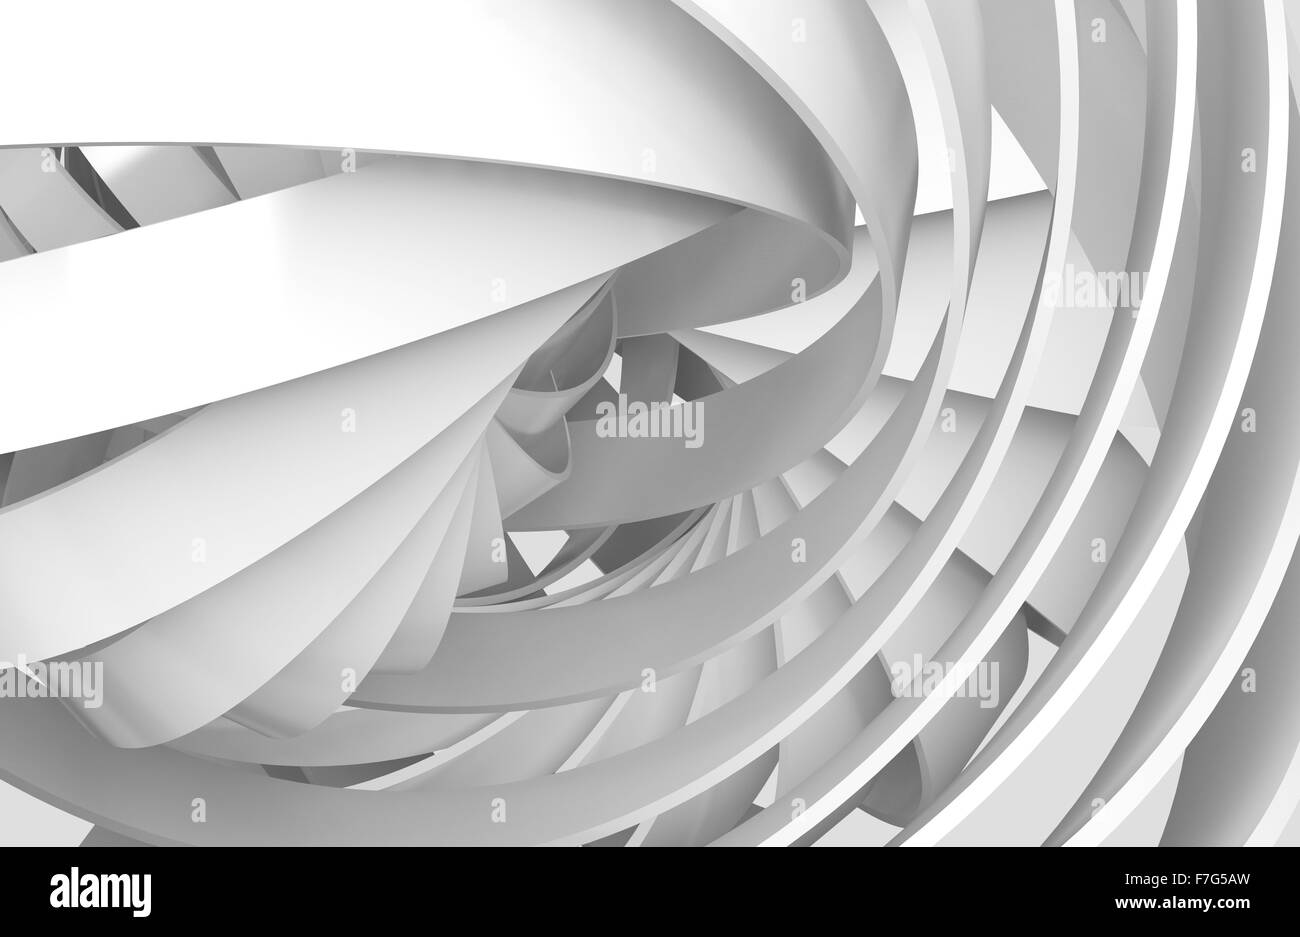 Abstract digital background with 3d spiral structures - Stock Image